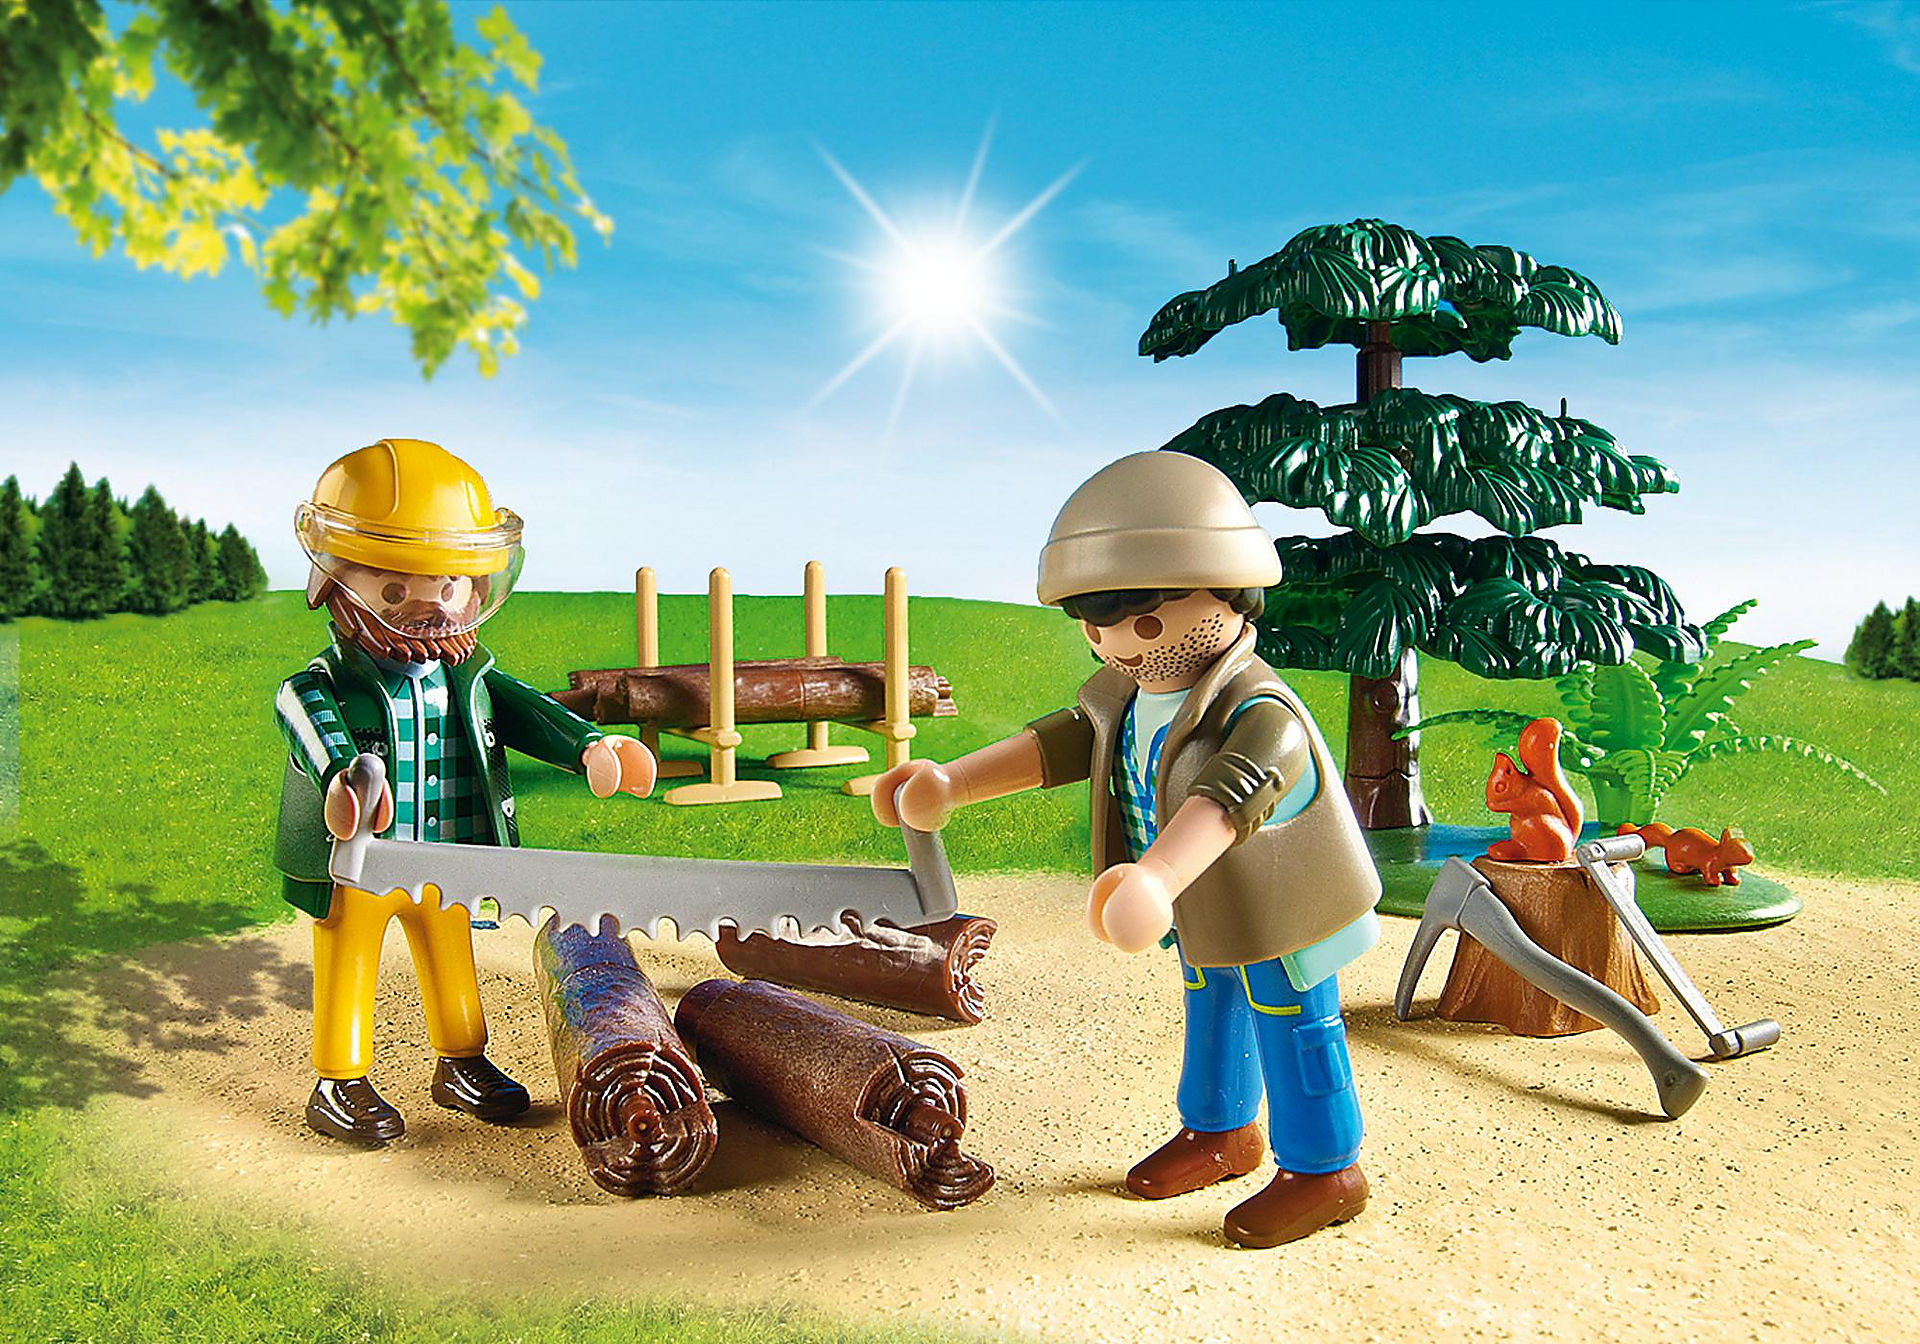 http://media.playmobil.com/i/playmobil/6814_product_extra3/Houthakker met tractor